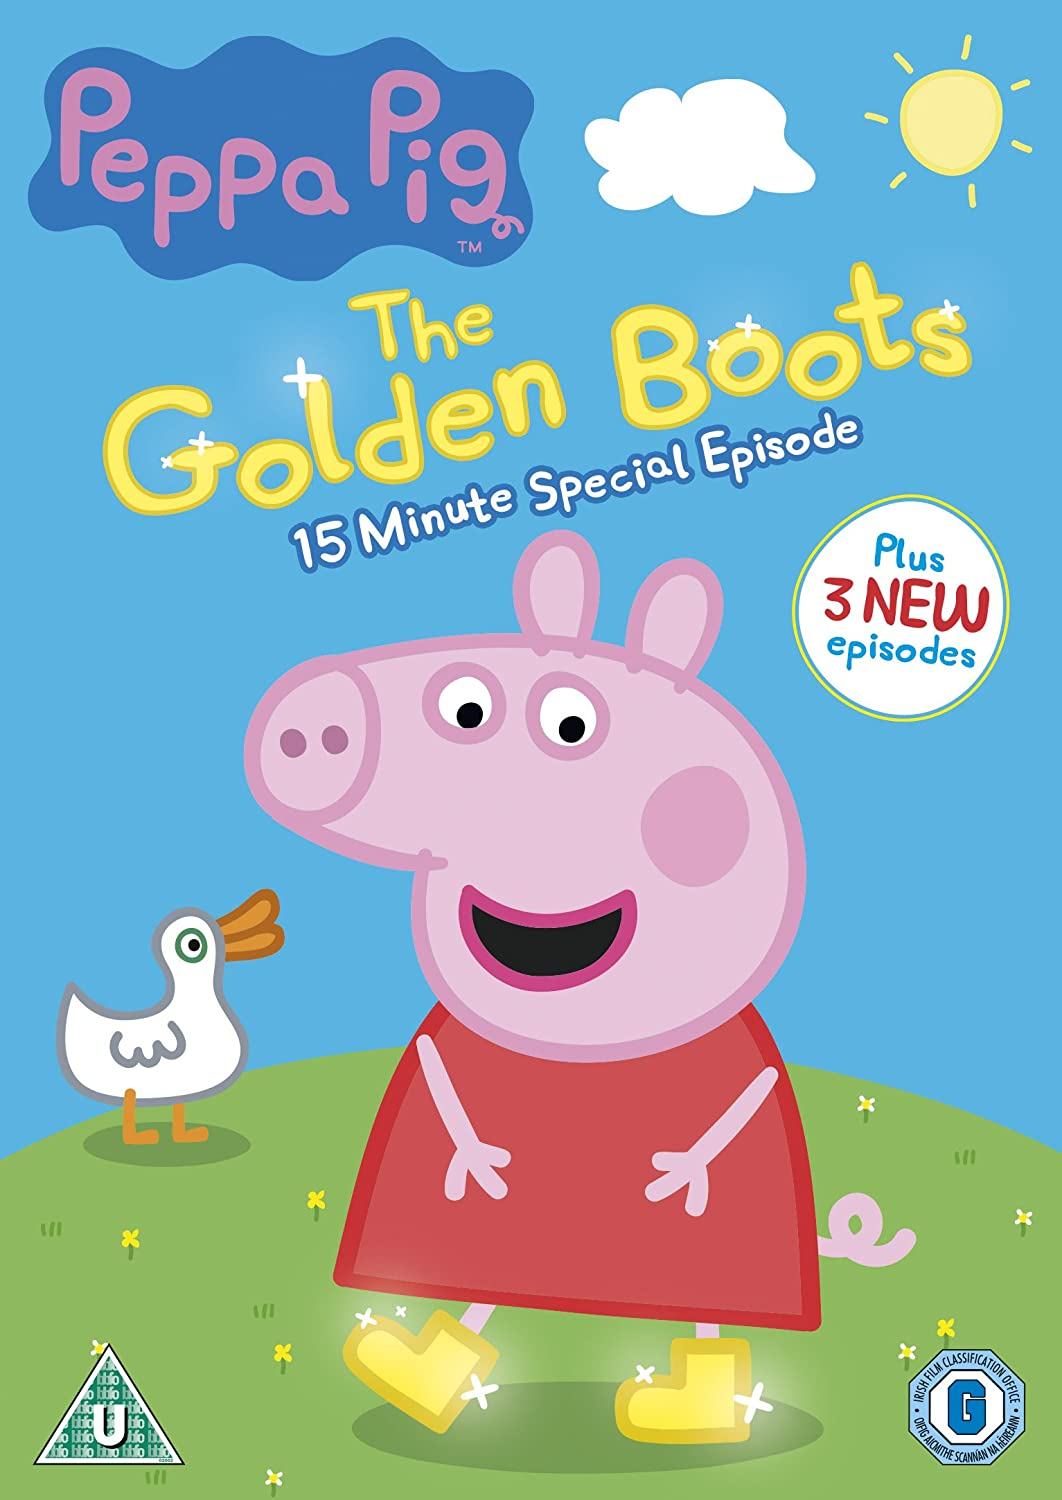 Peppa Pig: The Golden Boots [DVD] [2015]: Amazon.co.uk: John Sparkes: DVD &  Blu-ray